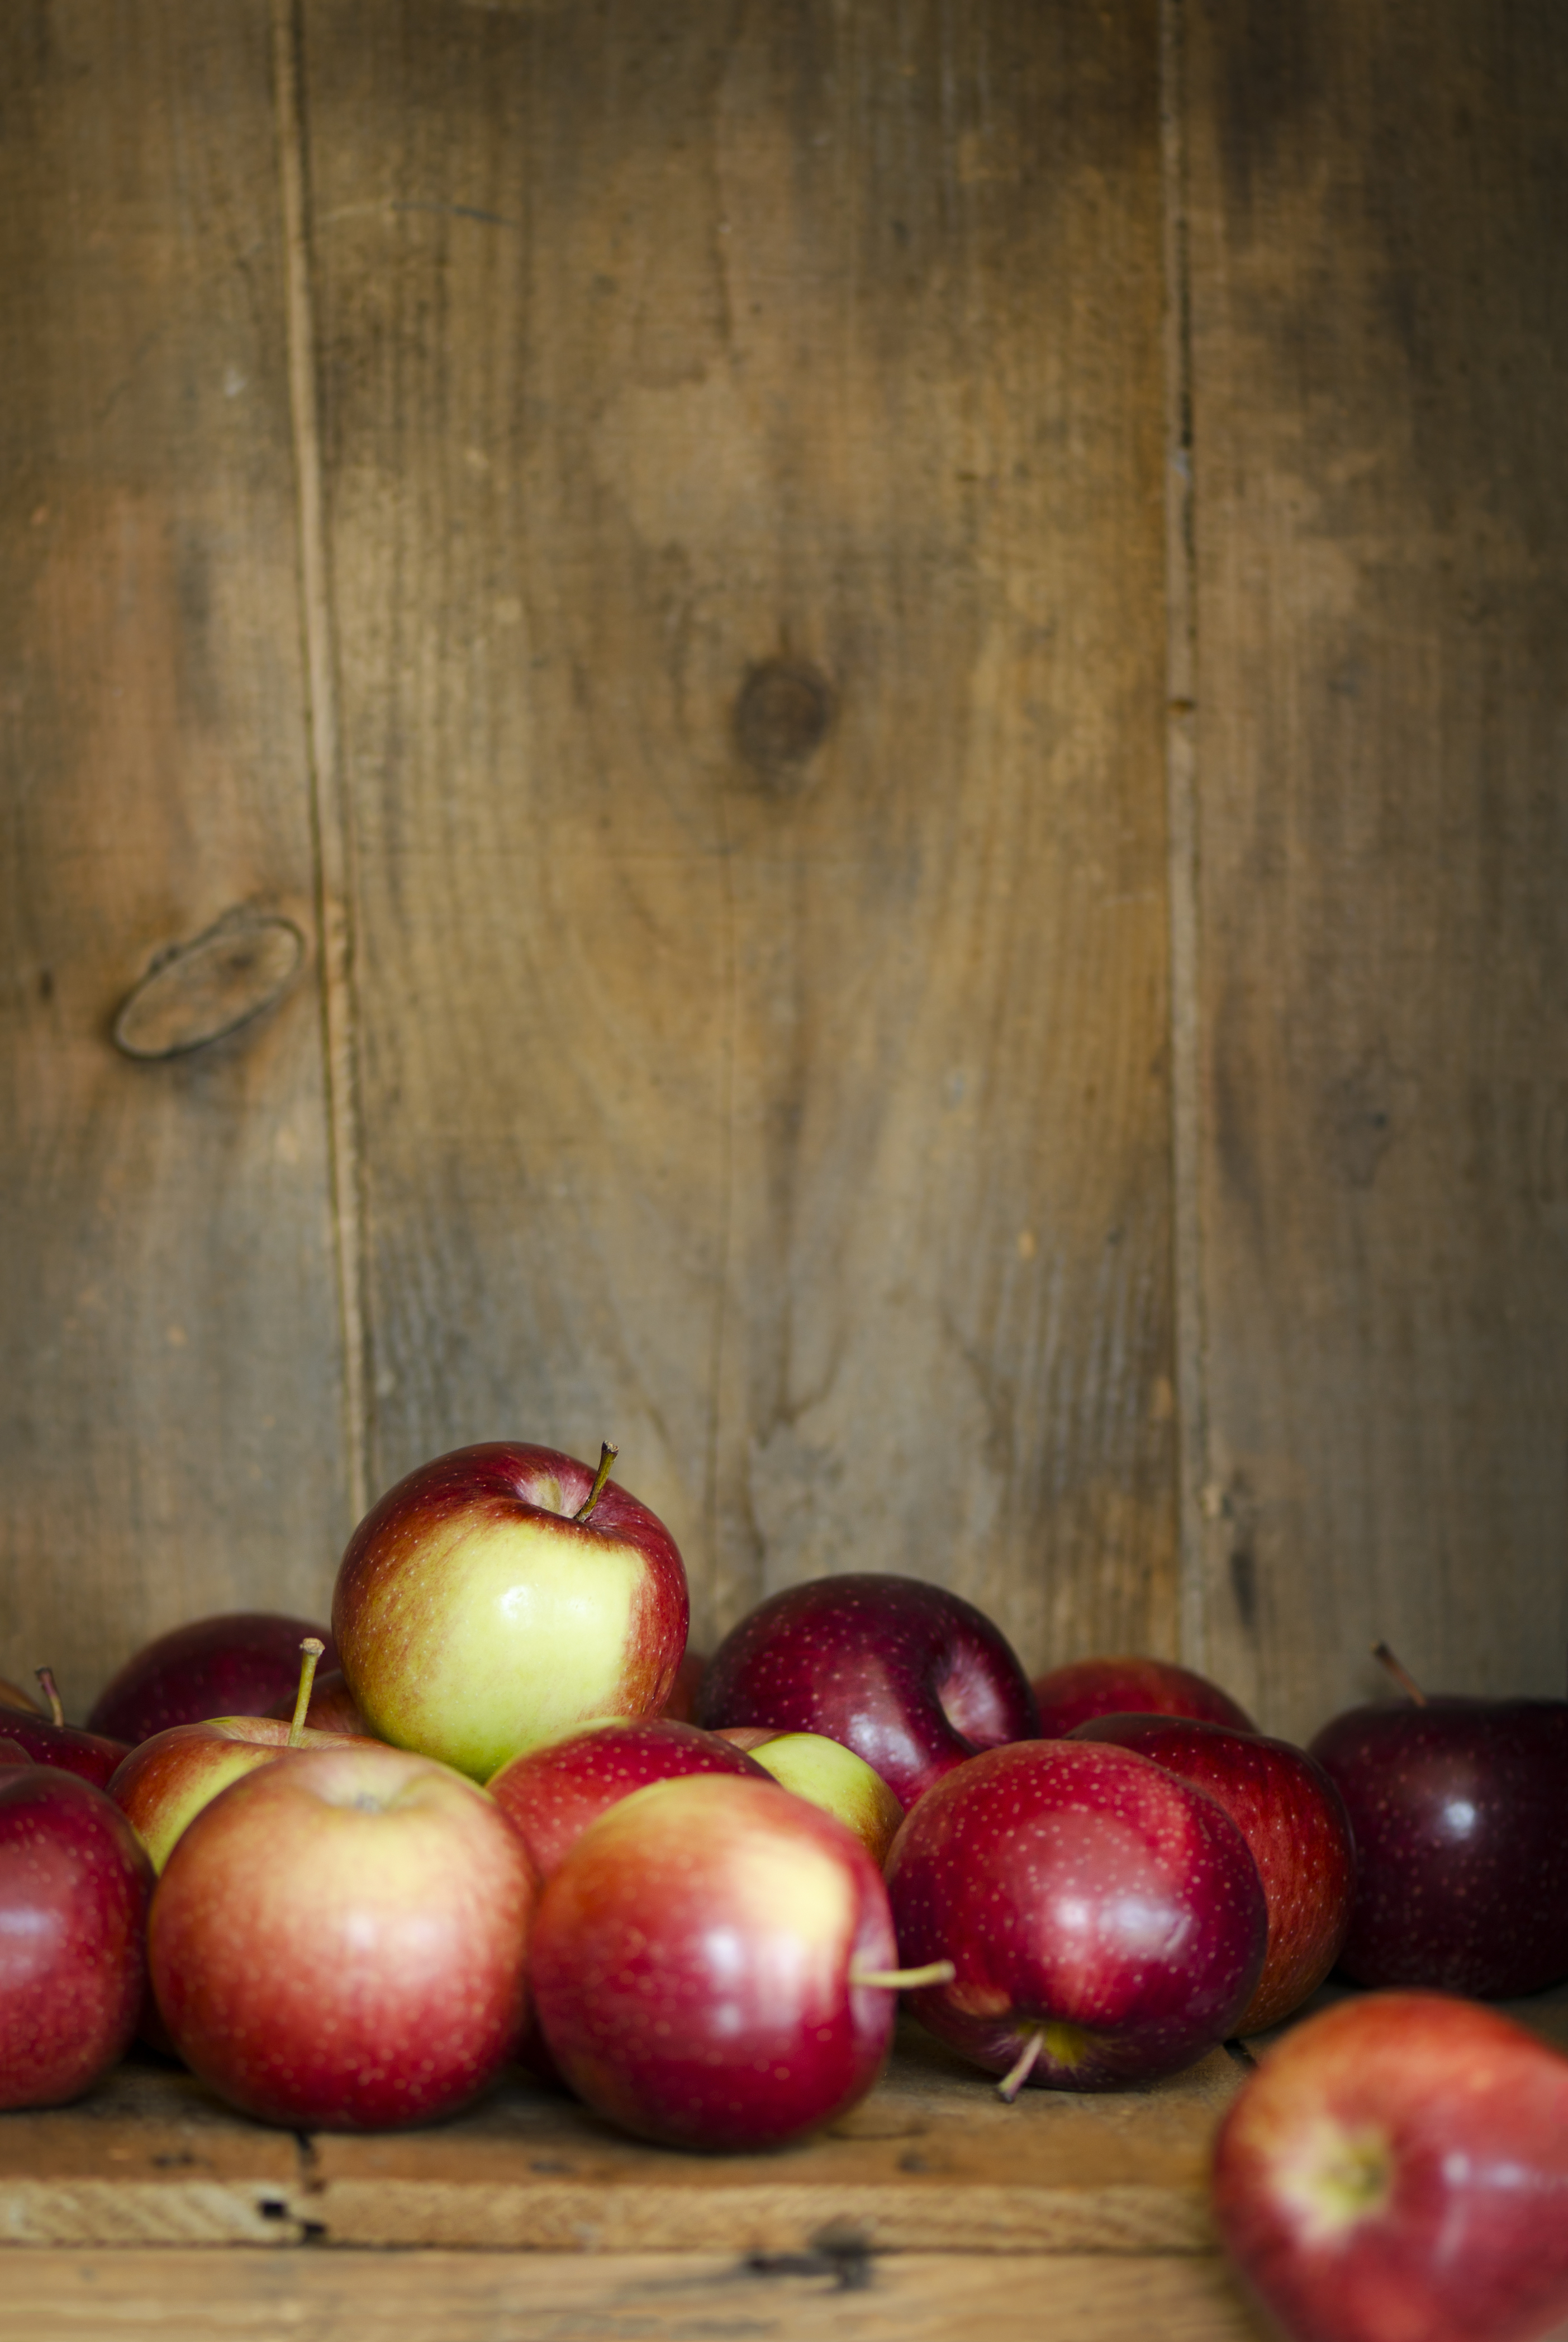 A wooden crate with some Empire apples and lots of room for copy.Similar Images: